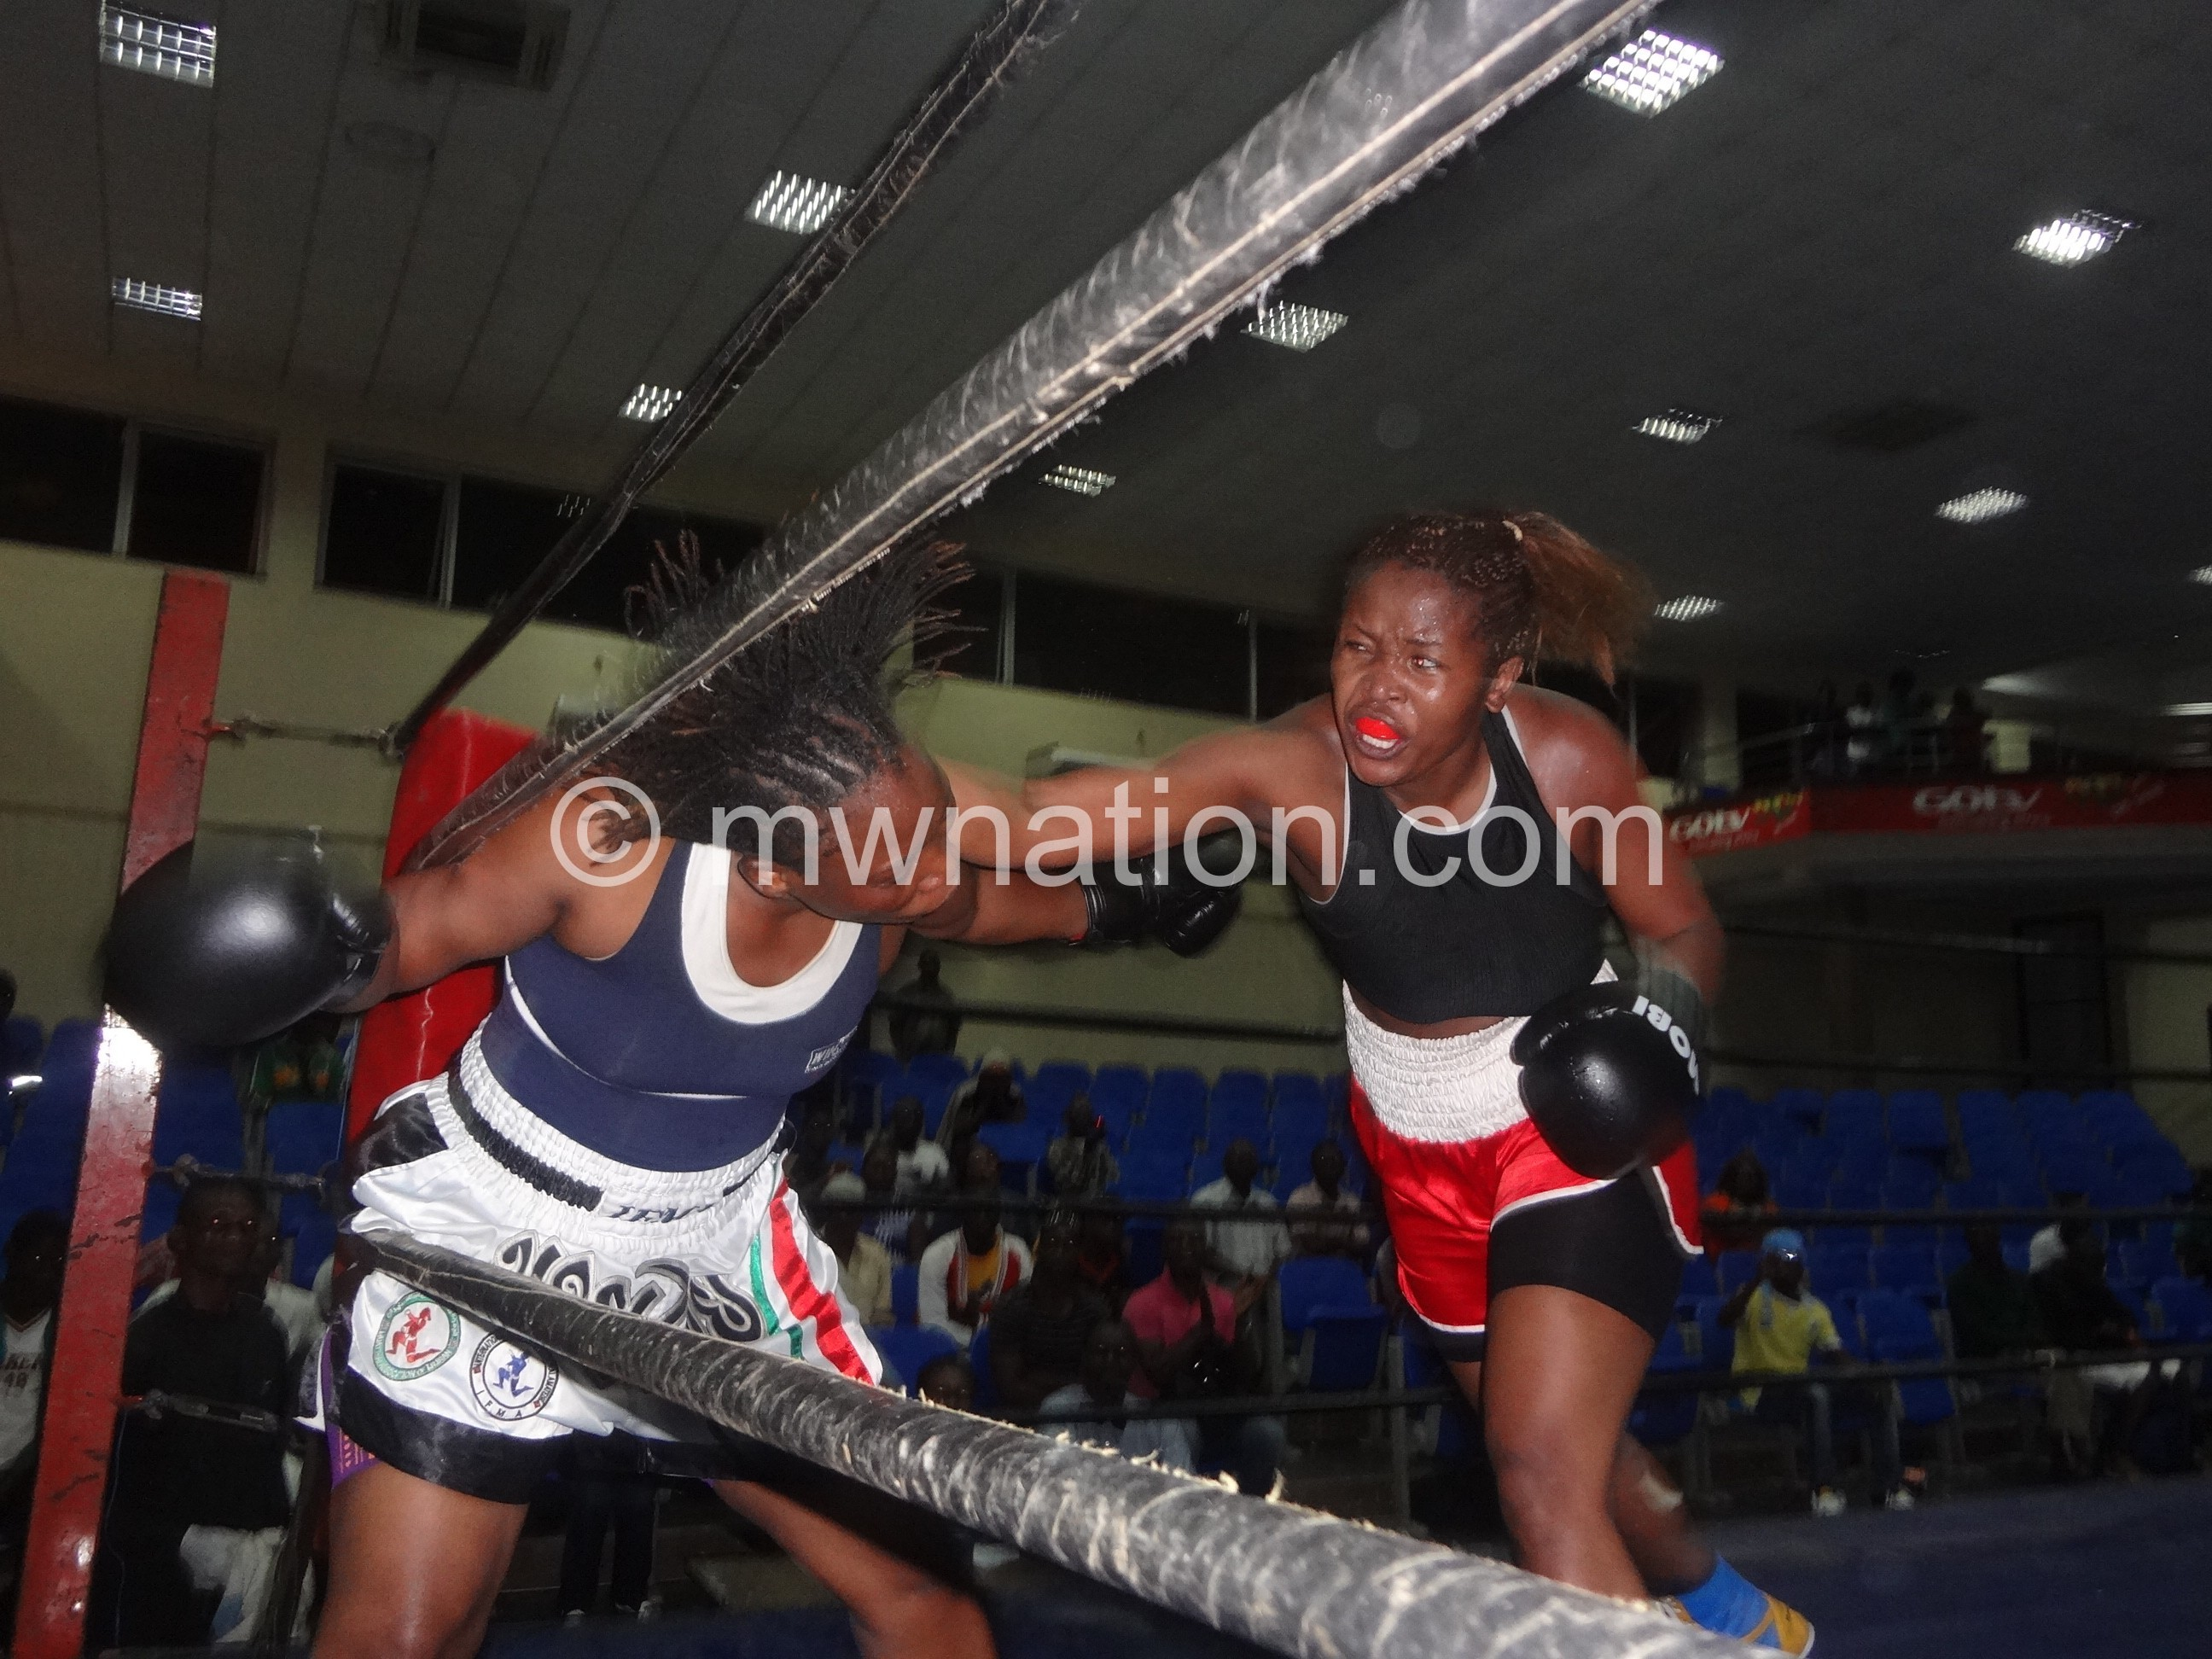 Mtimaukanena (R) lands a punch on Mhubira in the previous fight